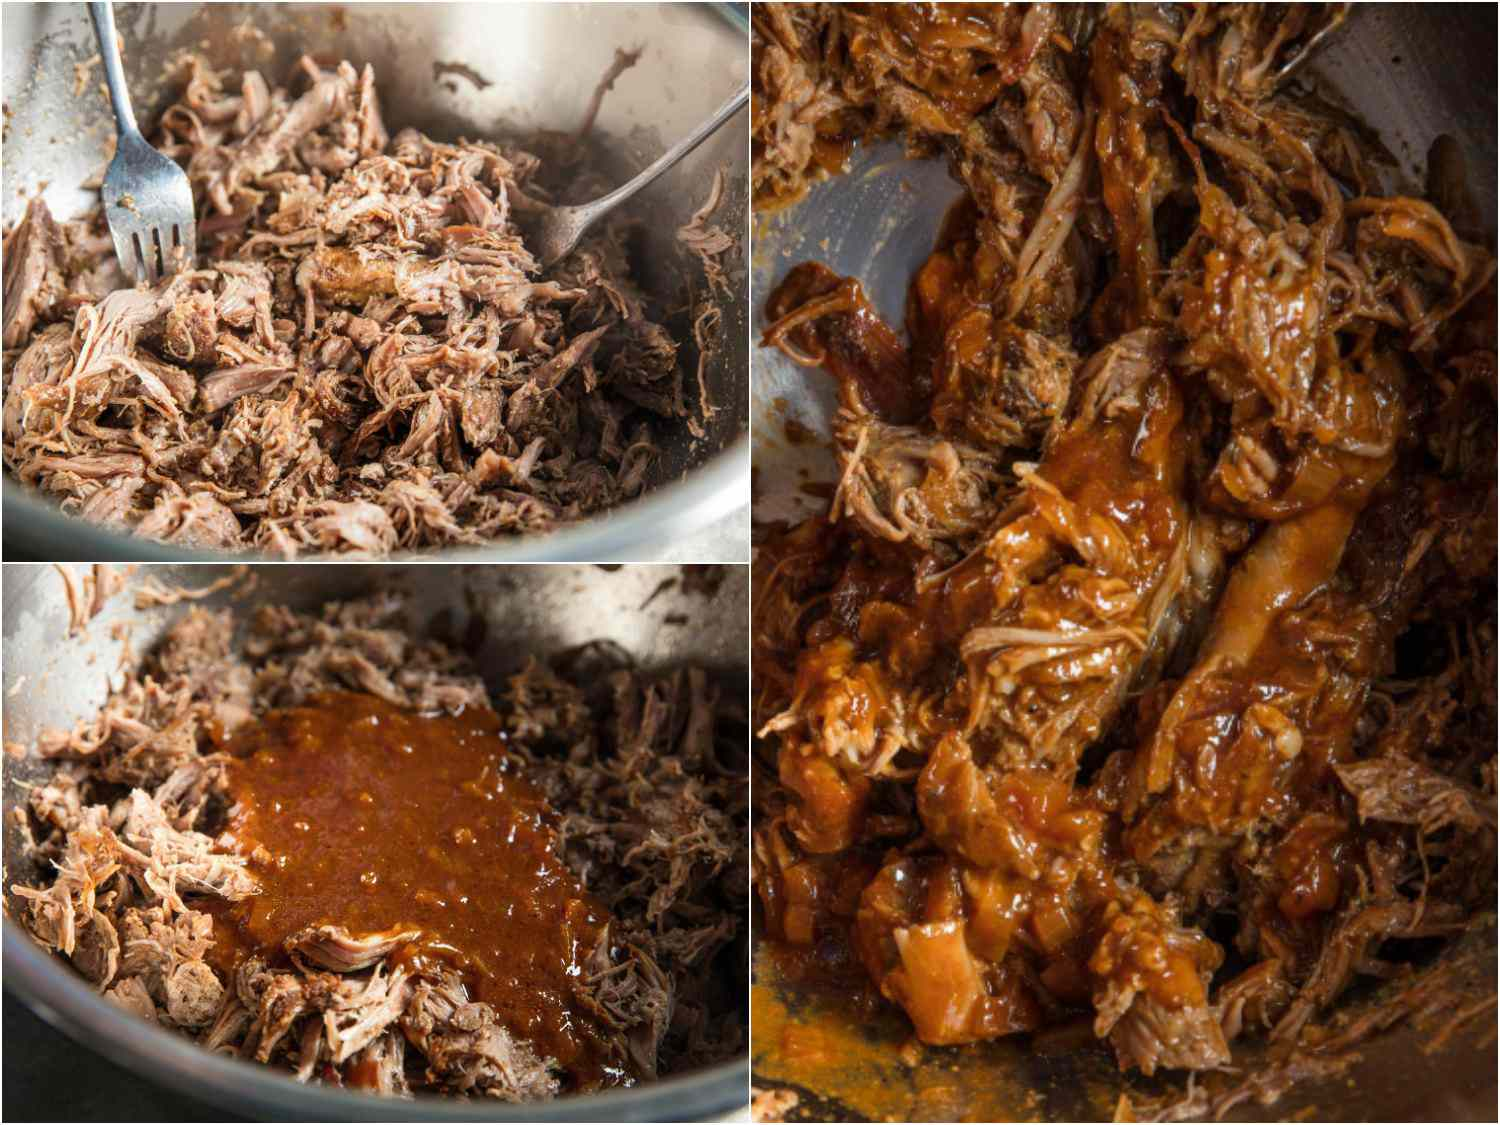 20170502-pulled-lamb-sandwiches-vicky-wasik-collage3.jpg